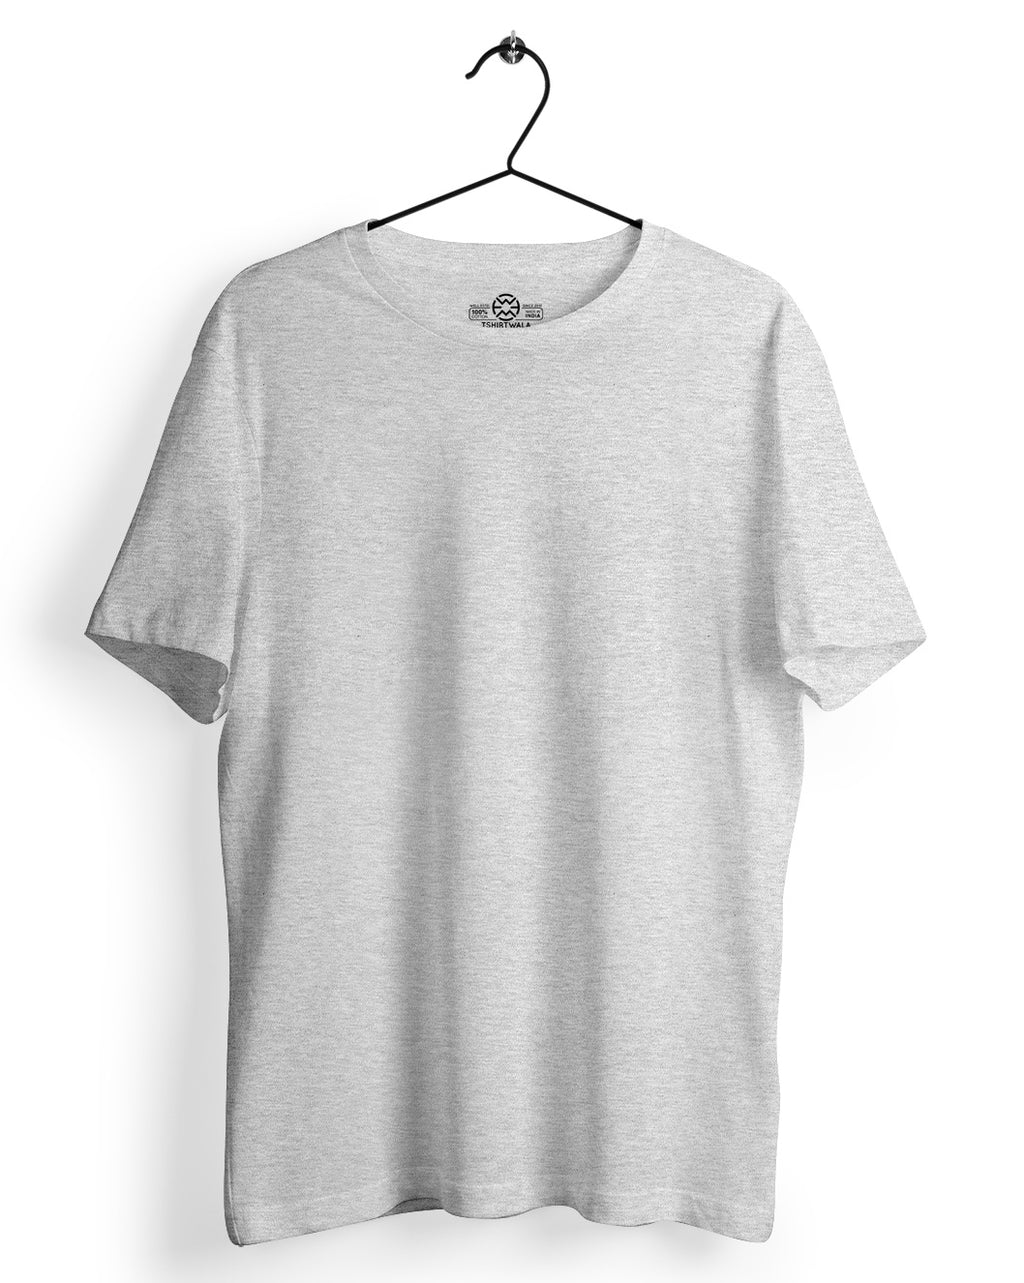 Basic Grey Melange Round neck T-shirt